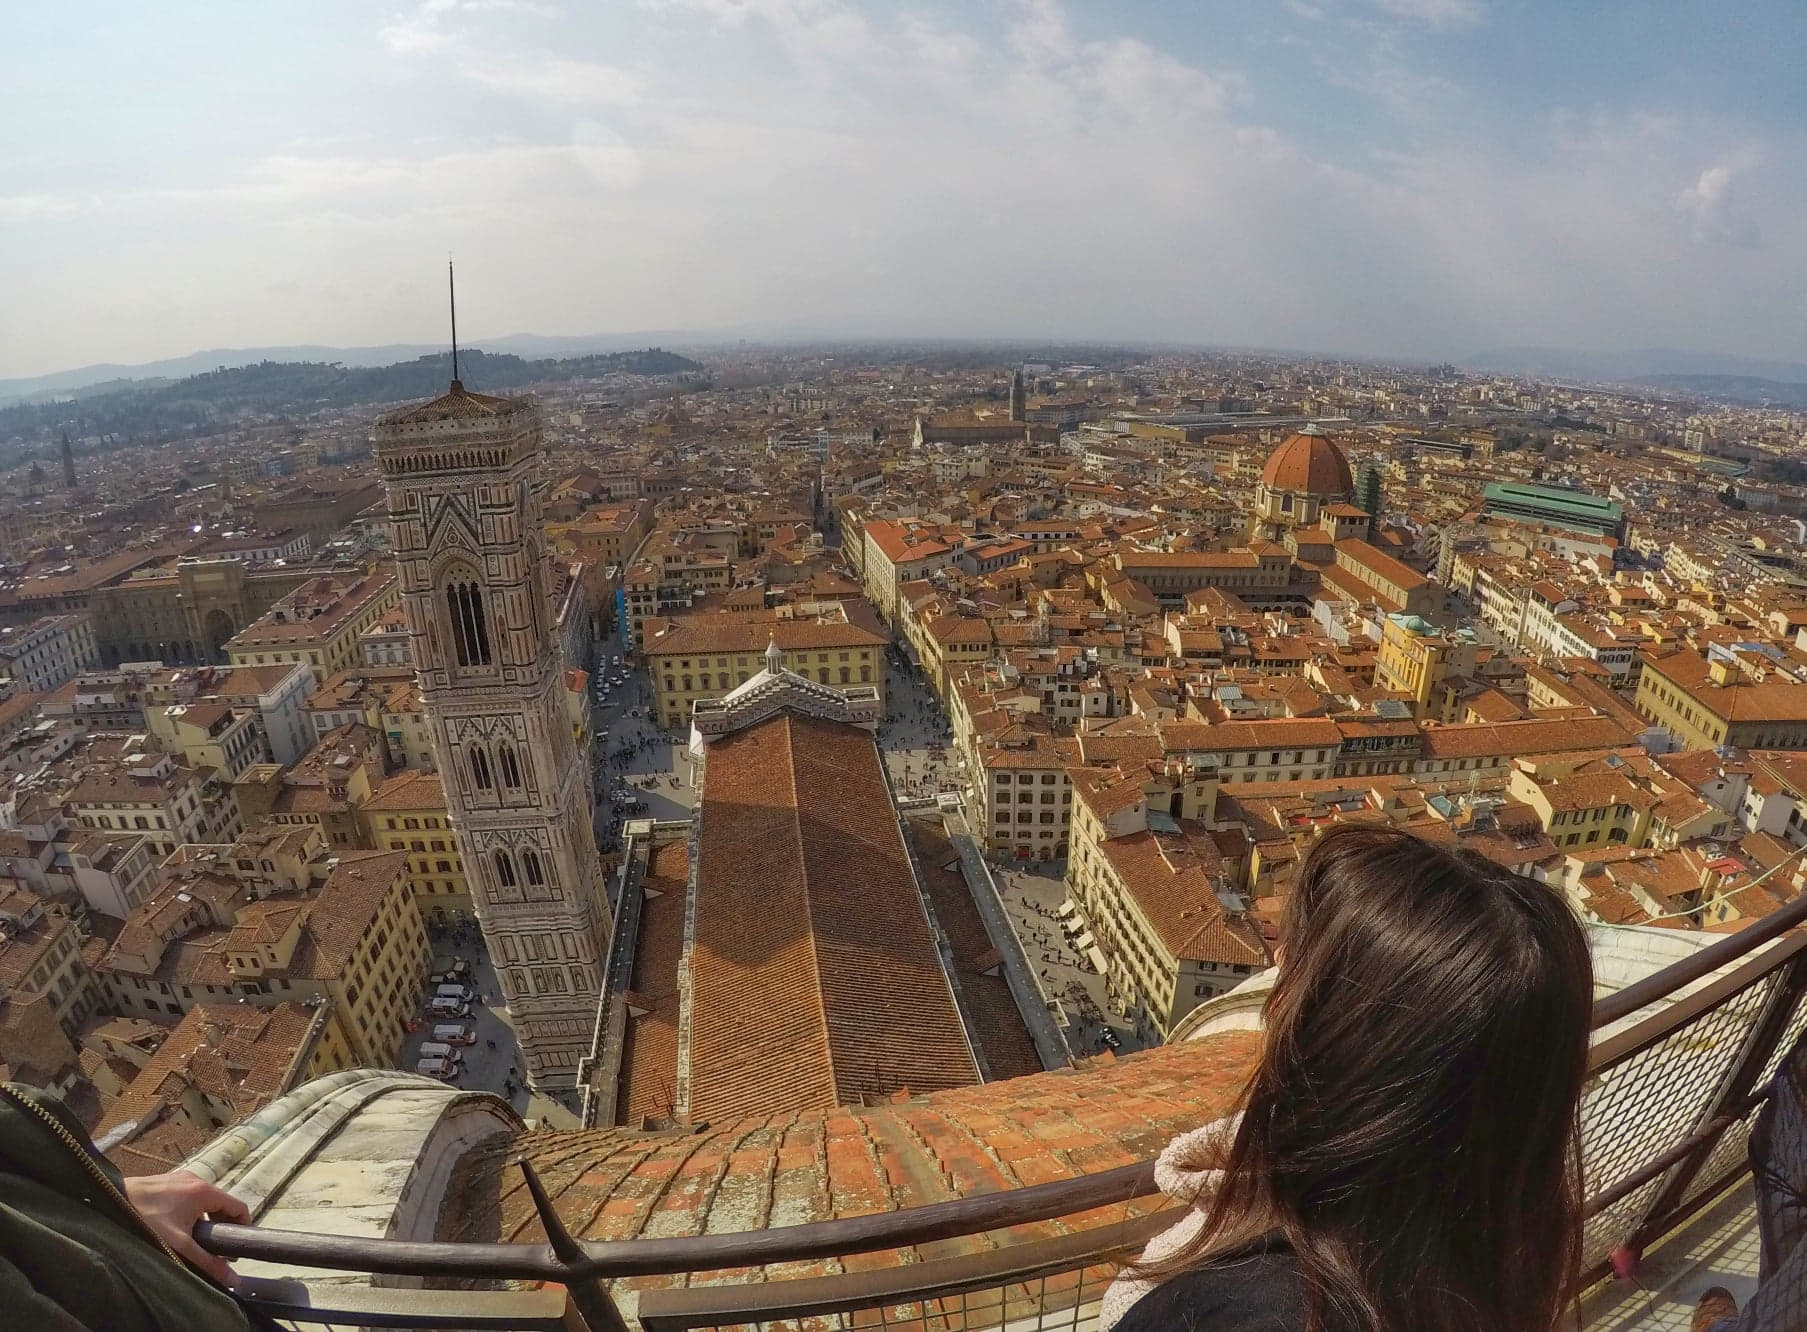 Florence itinerary 2 days - Cathedral view of city